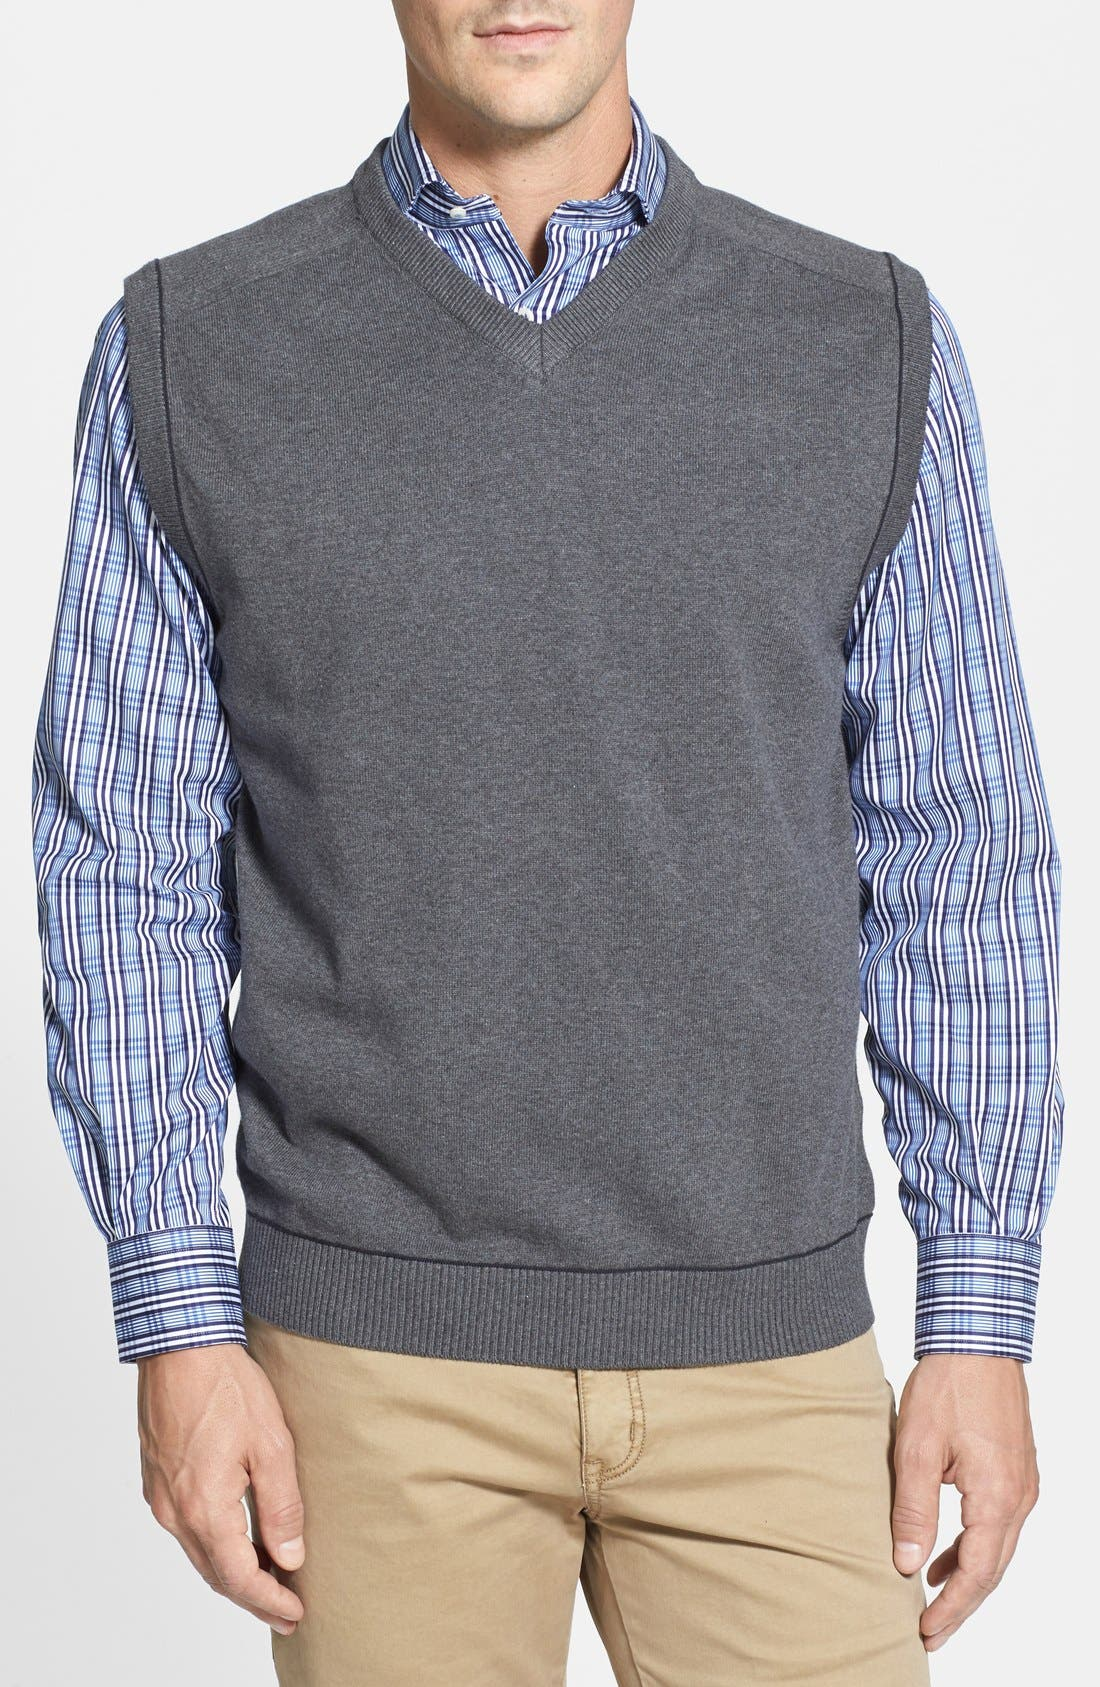 Broadview V-Neck Sweater Vest,                         Main,                         color, Charcoal Heather